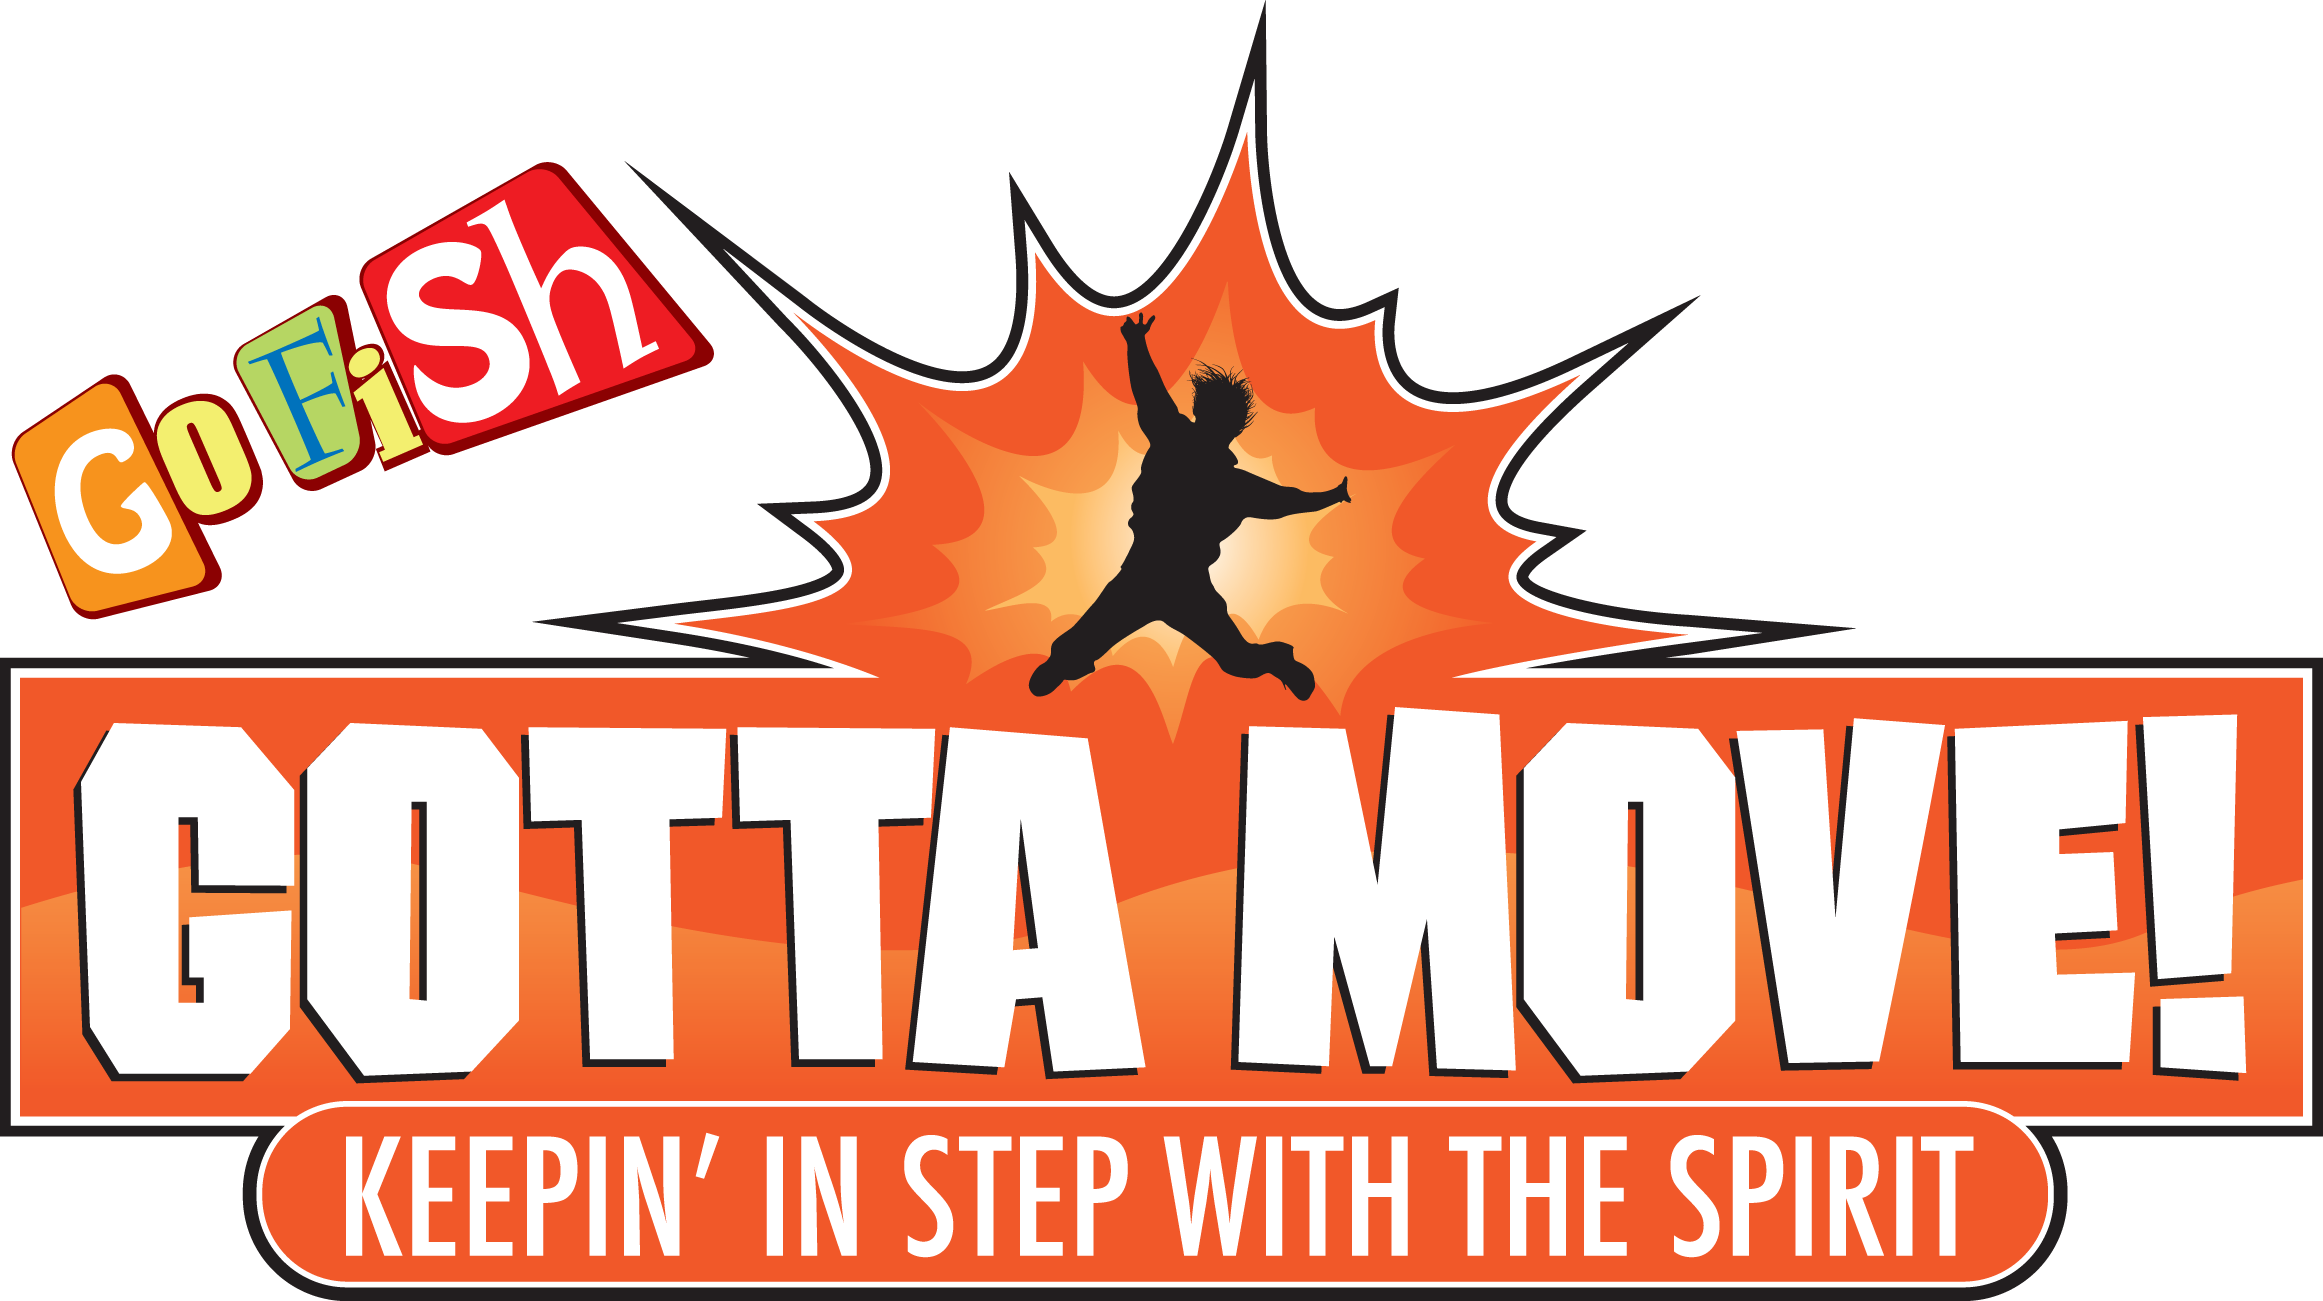 Gotta move! - Gotta Move! is a Vacation Bible School curriculum designed to give children a biblical understanding of what it means to be a Christian and walk with God. Each day children will see that God provides everything we need to be close to Him. However, He does require a response- having faith means we Gotta Move!